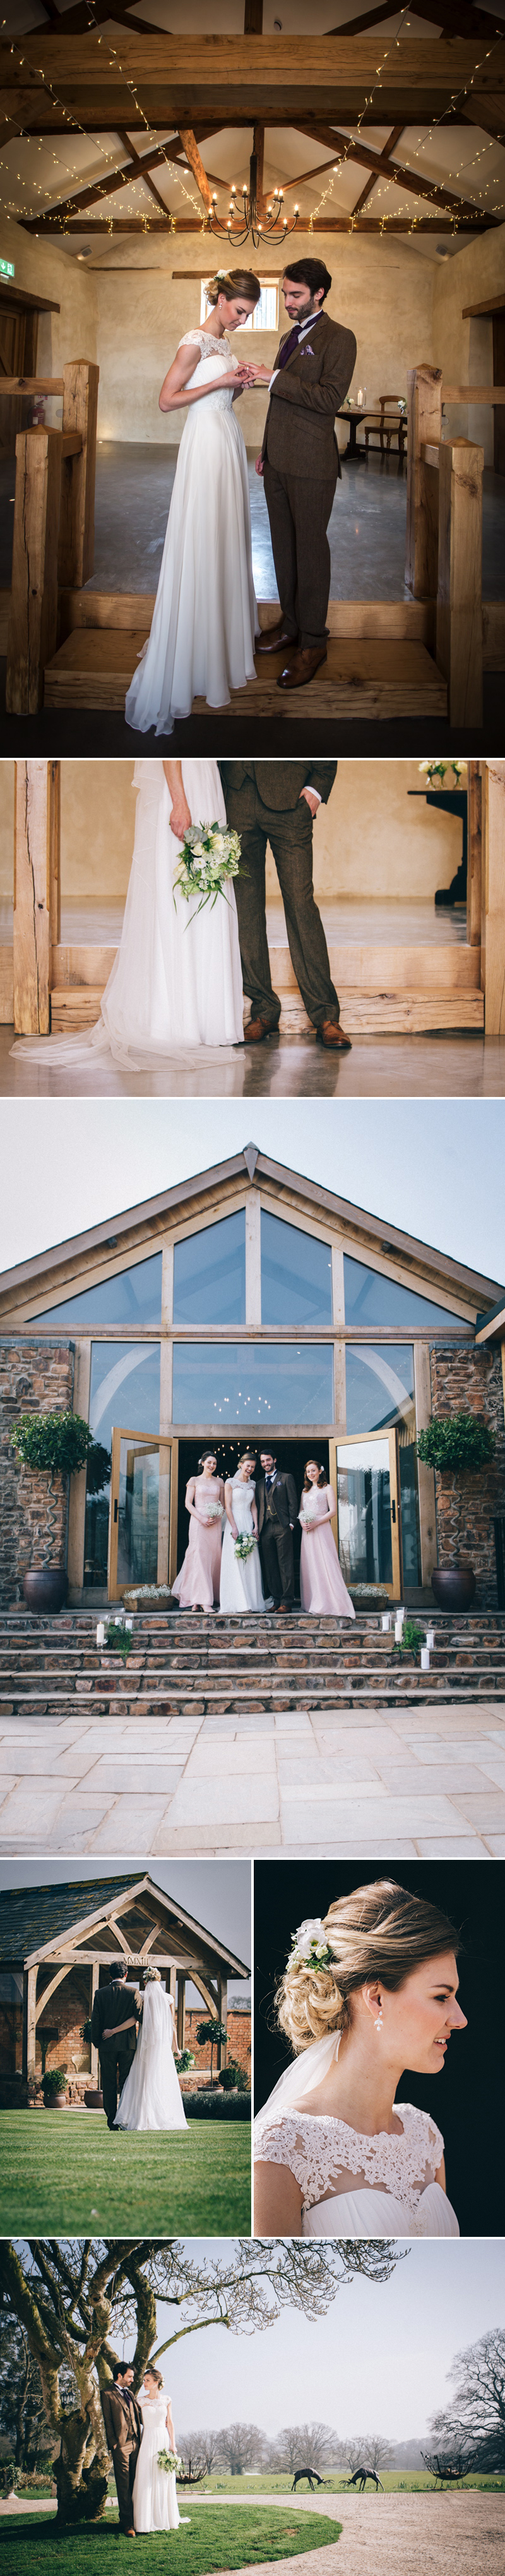 wedding-venues-in-devon-uk-wedding-venue-directory-upton-barn-and-walled-garden-rustic-inspired-styled-shoot-coco-wedding-venues-003